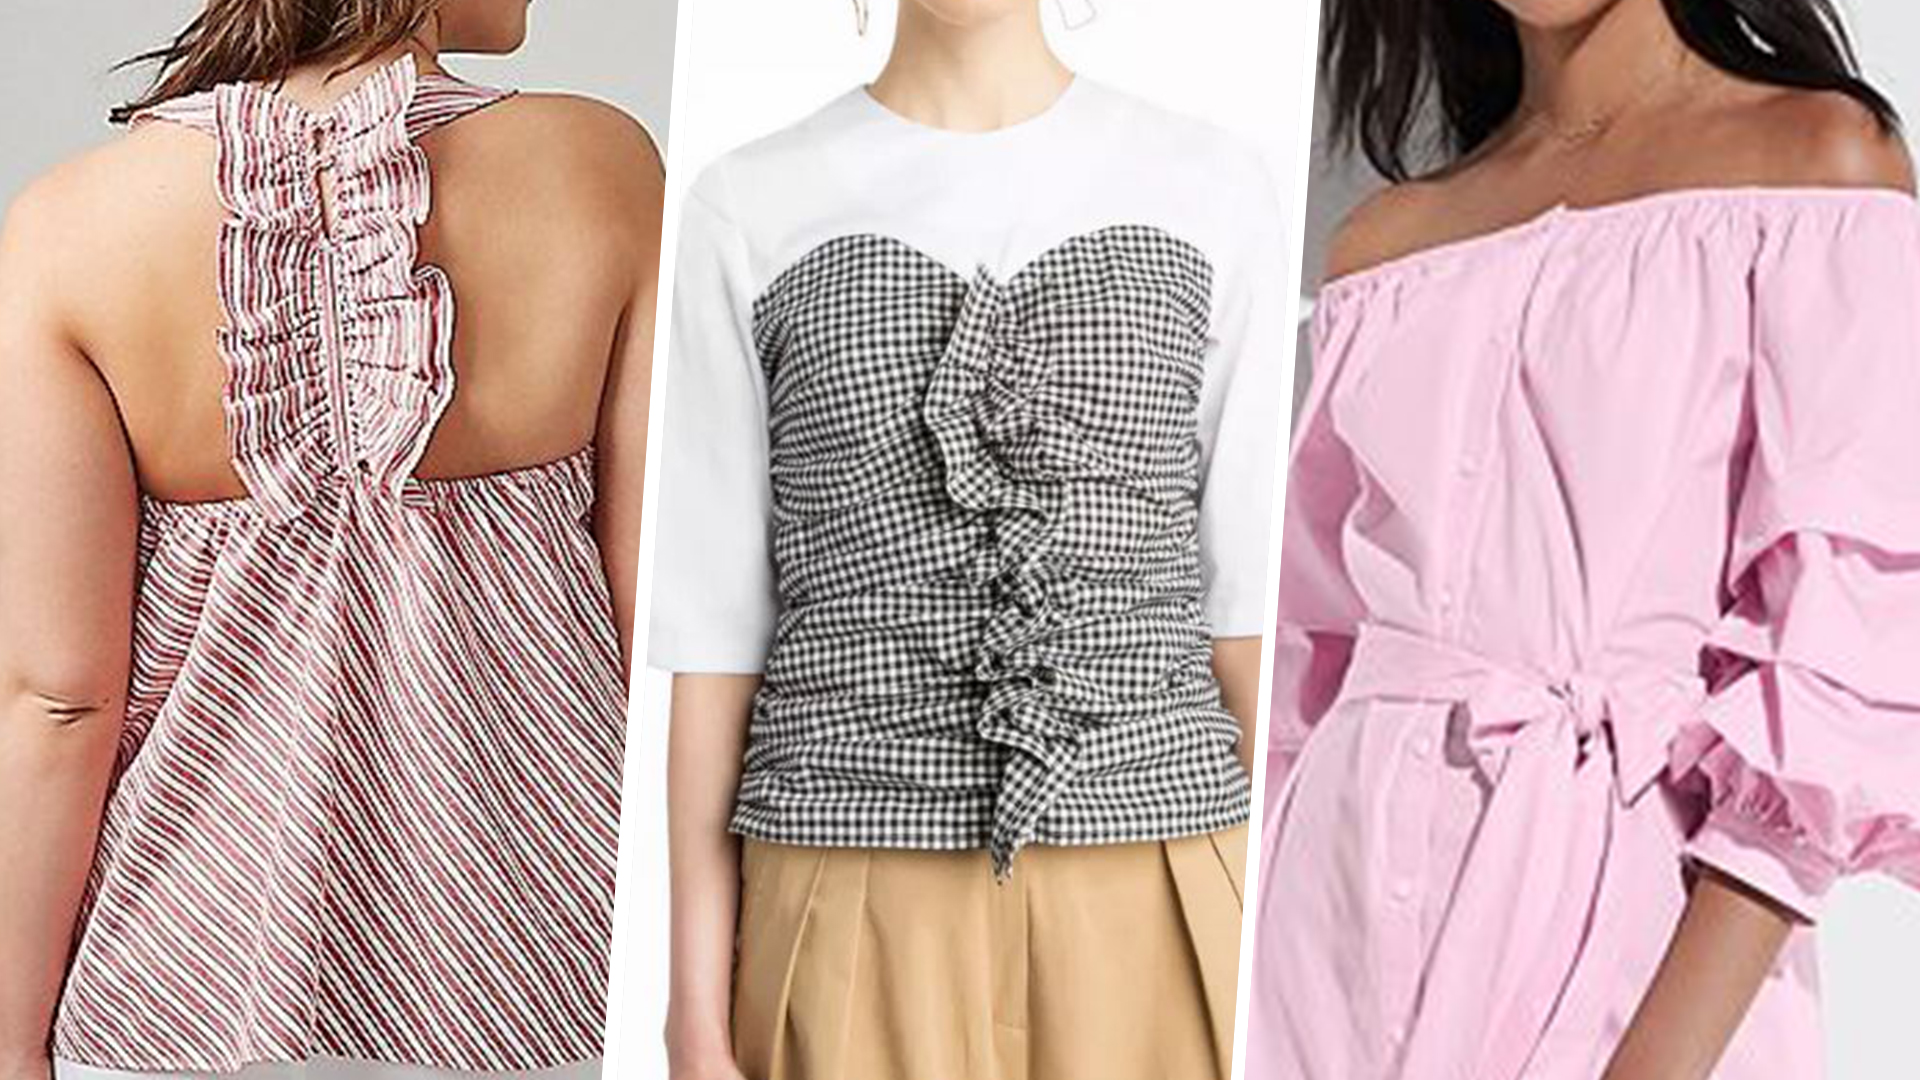 Ruffles fashion trend: How to wear the look